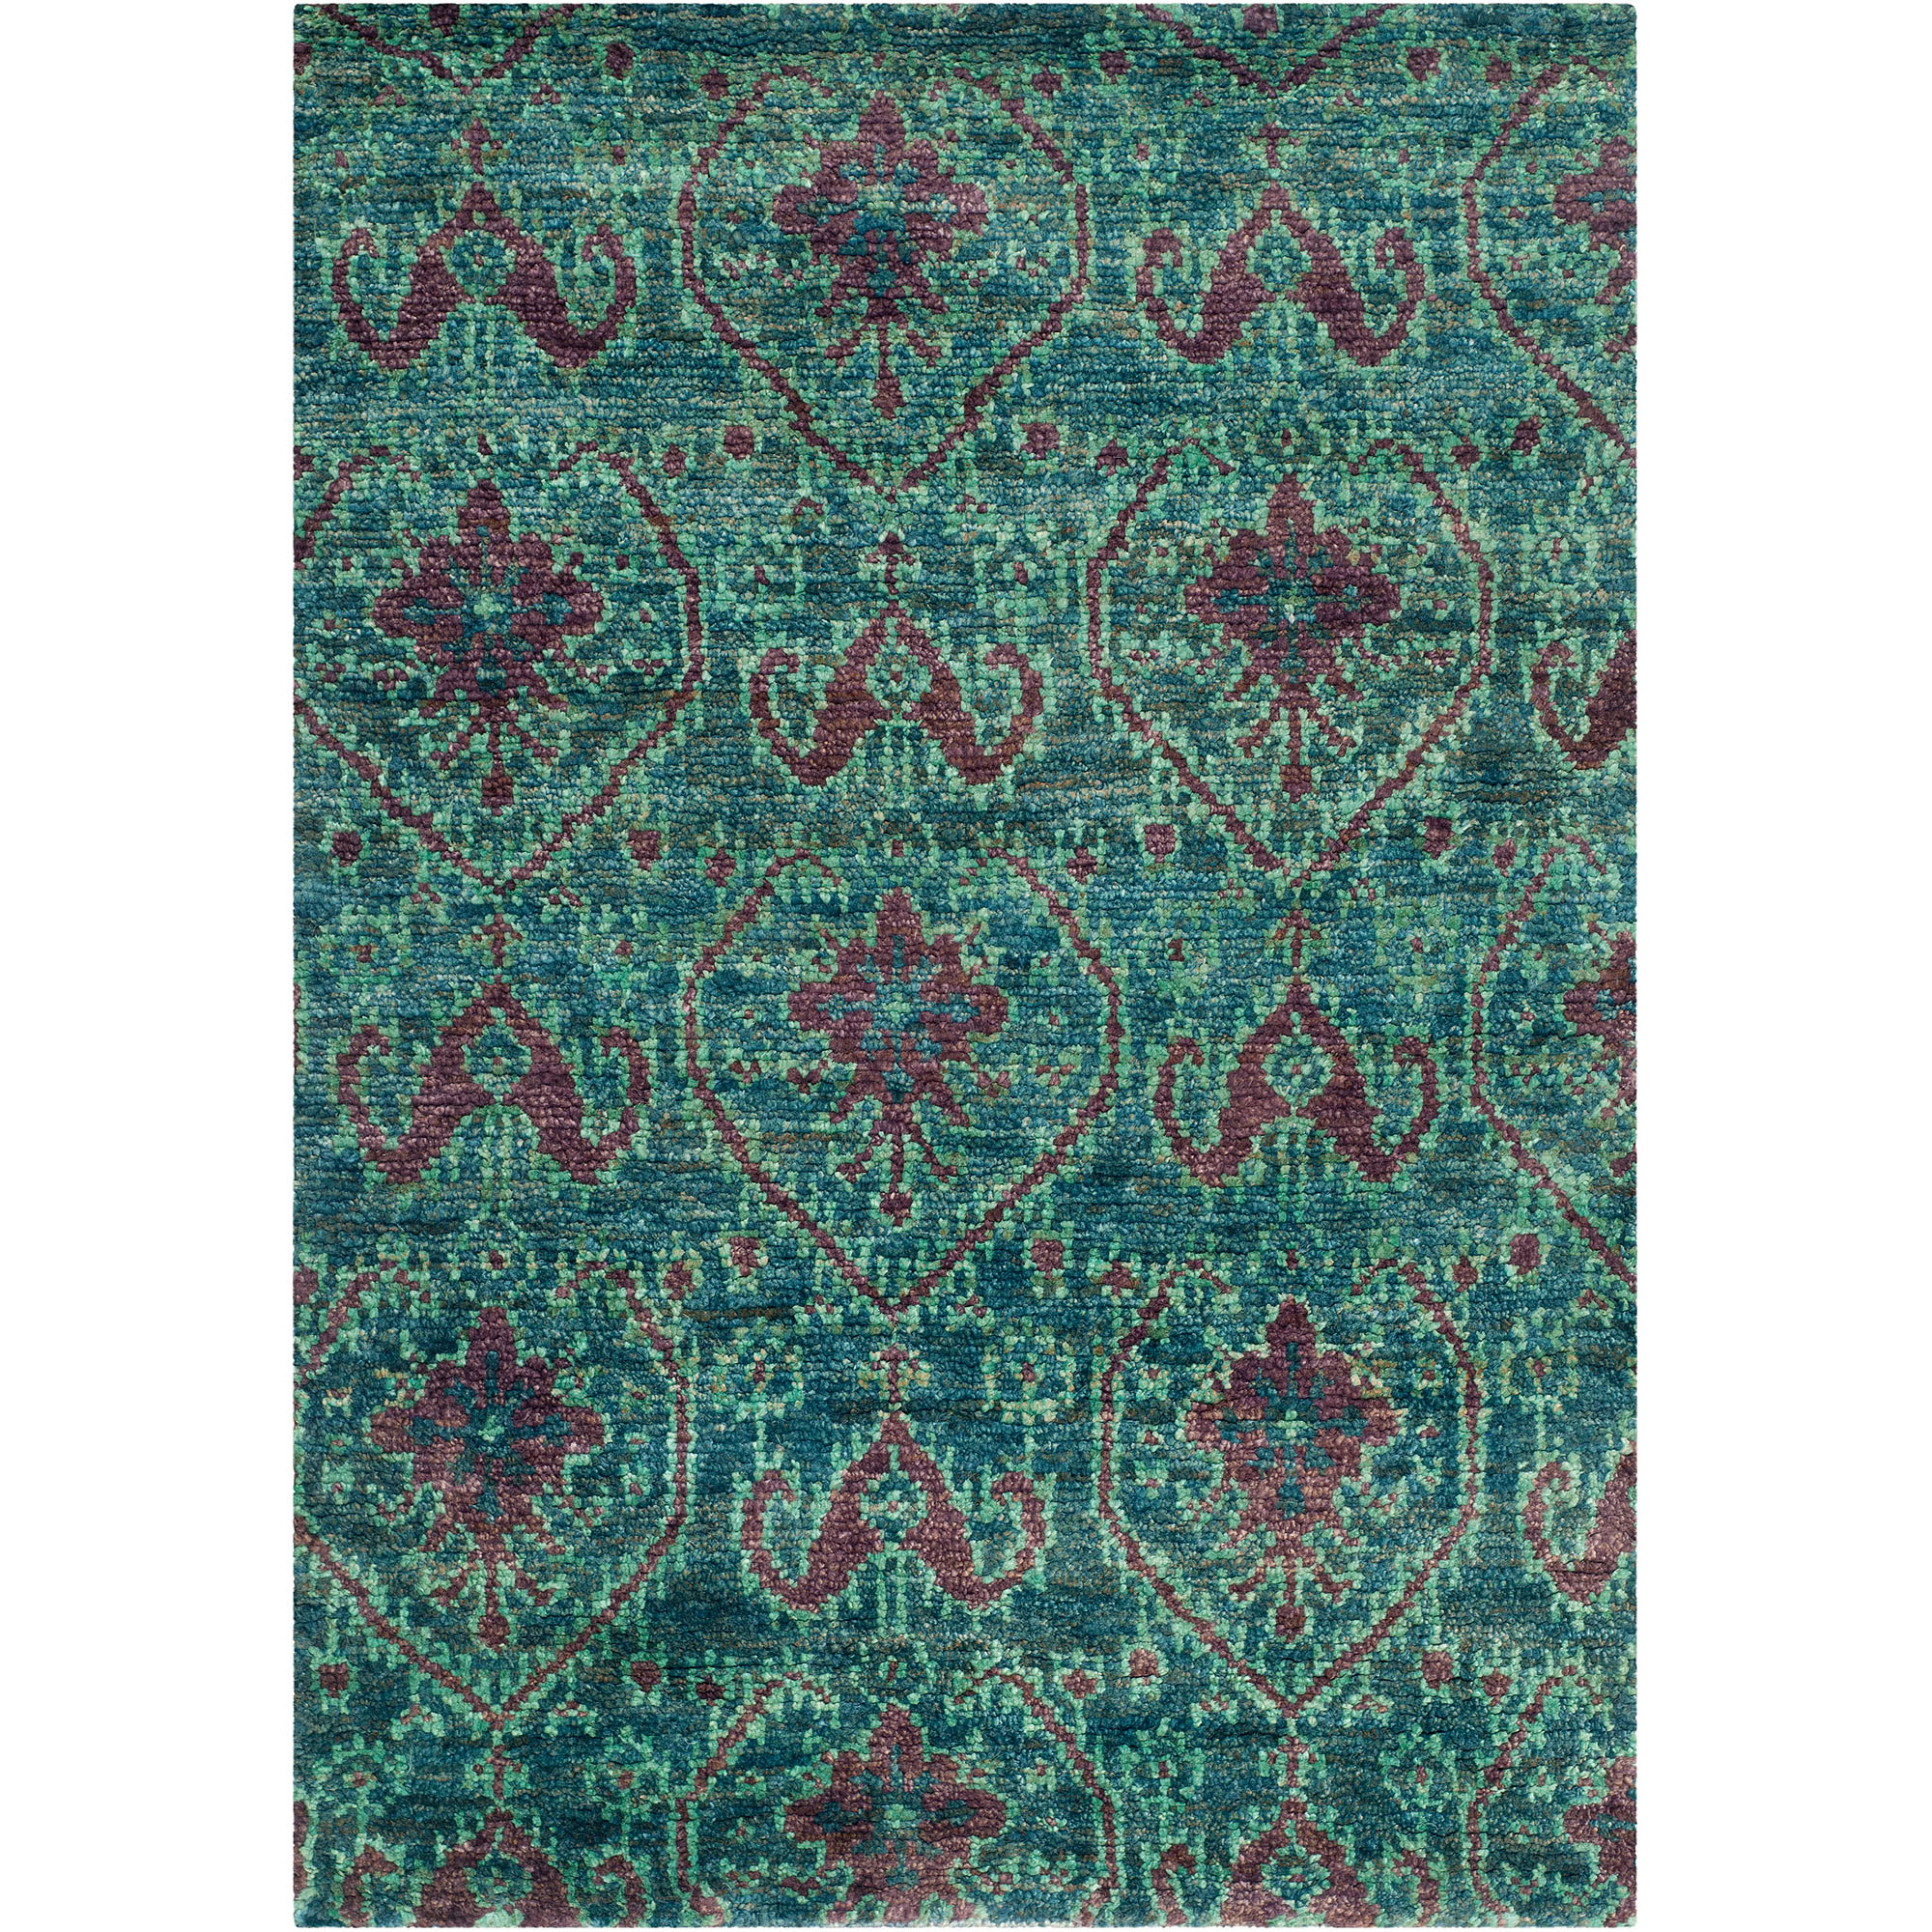 Safavieh Thom Filicia Nellie Hand Knotted Area Rug, Blue Mist